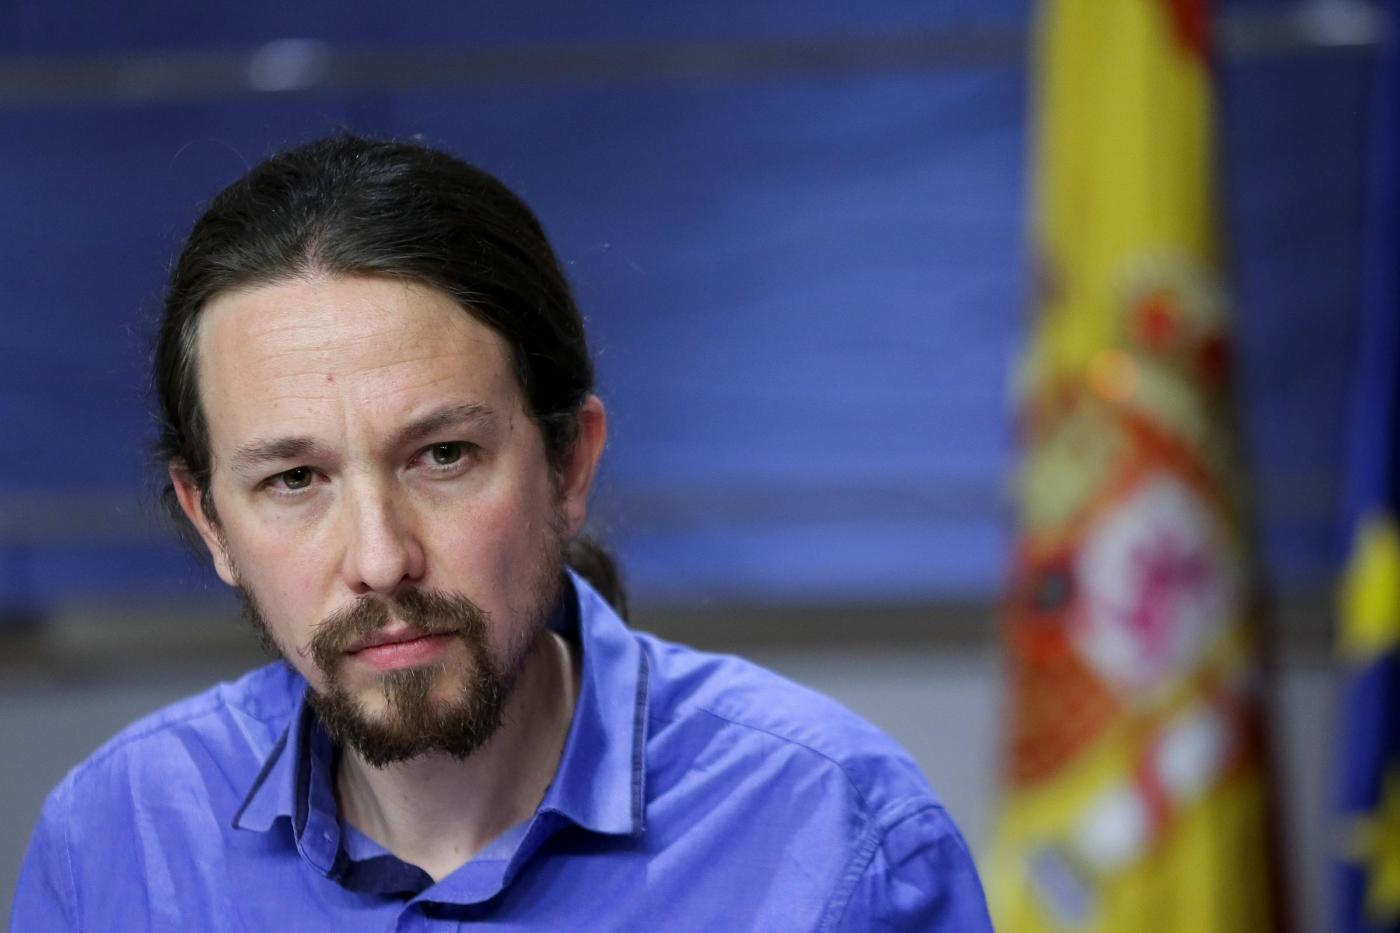 LEADER OF PODEMOS PARTY IN PRESS CONFERENCE